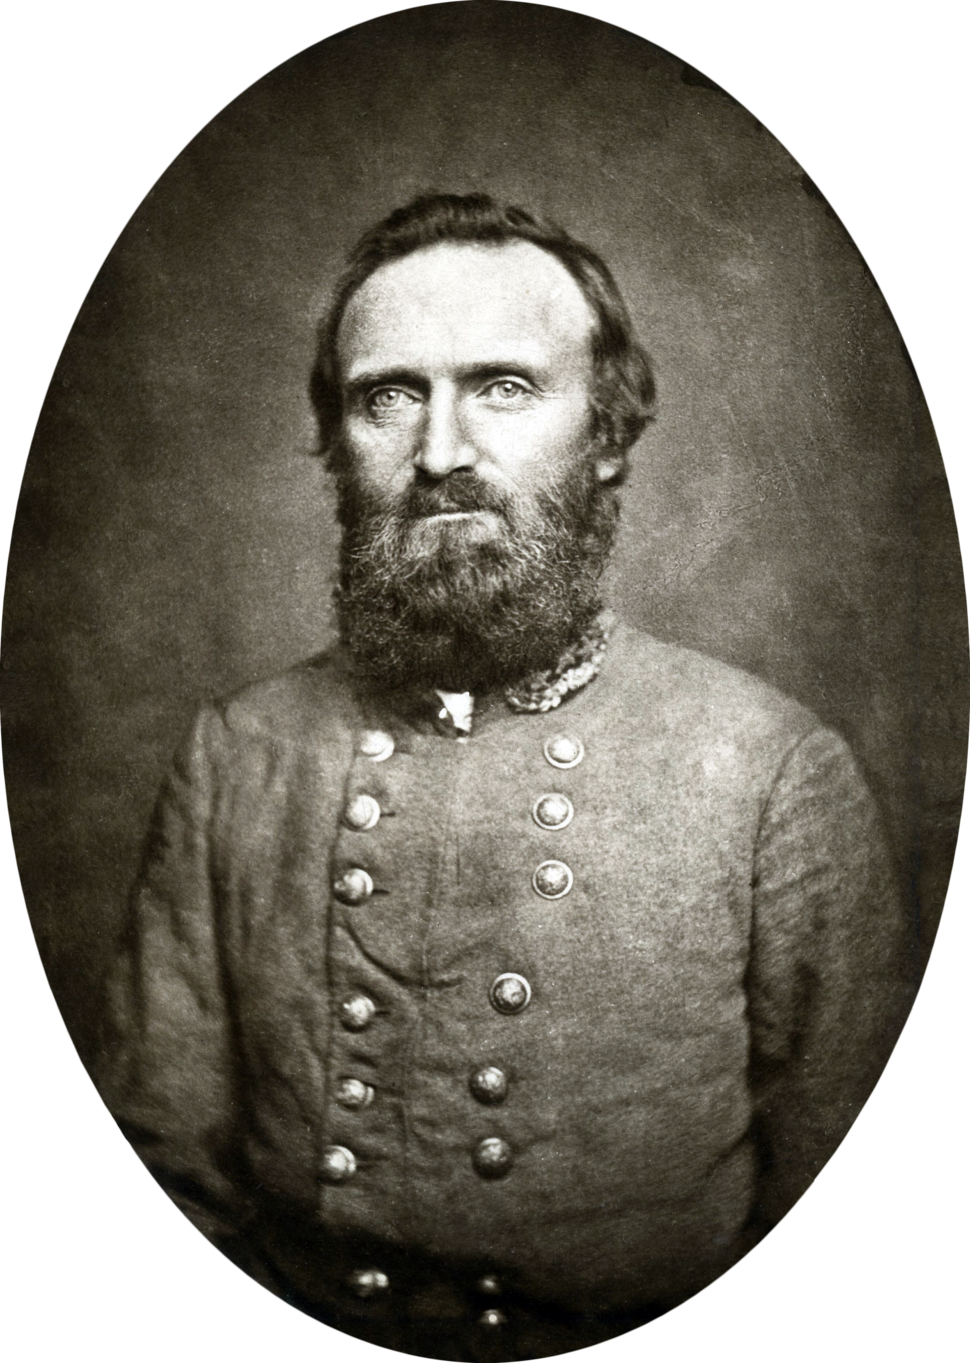 Stonewall Jackson by Routzahn, 1862